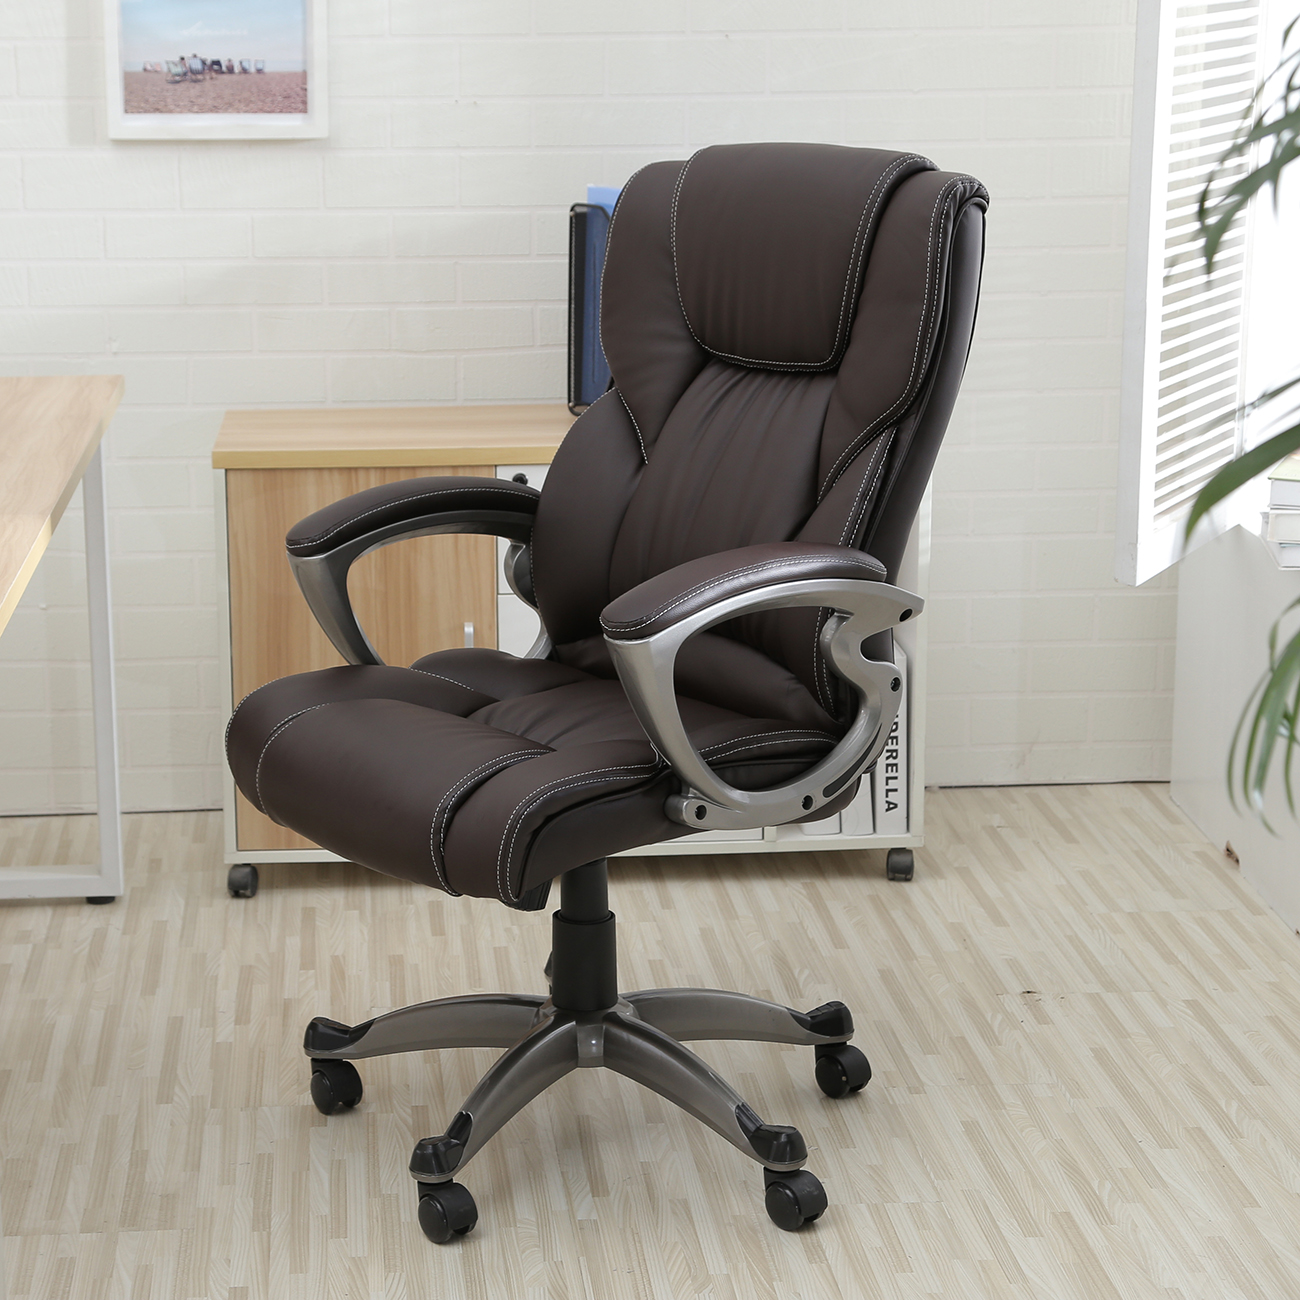 Belleze High Back Executive Faux Leather Office Chair Computer Adjustable Height Tilt, Brown